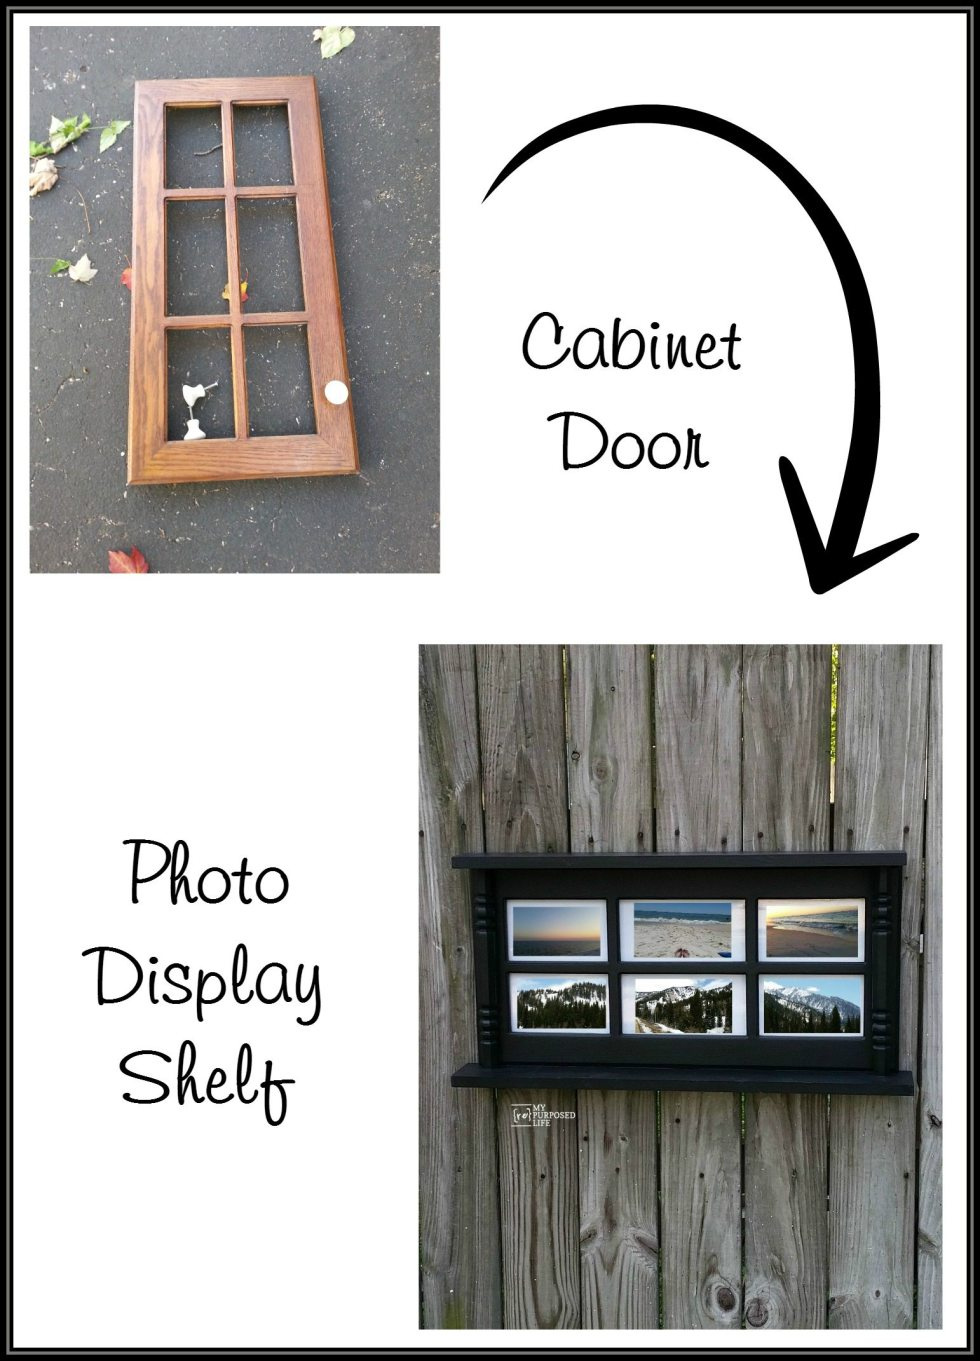 how to make a photo display wall shelf out of an old glass cabinet door and some small chair spindles. Add two small shelves, and voila! you're done! #MyRepurposedLife #glass #door #photo #display #shelf via @repurposedlife